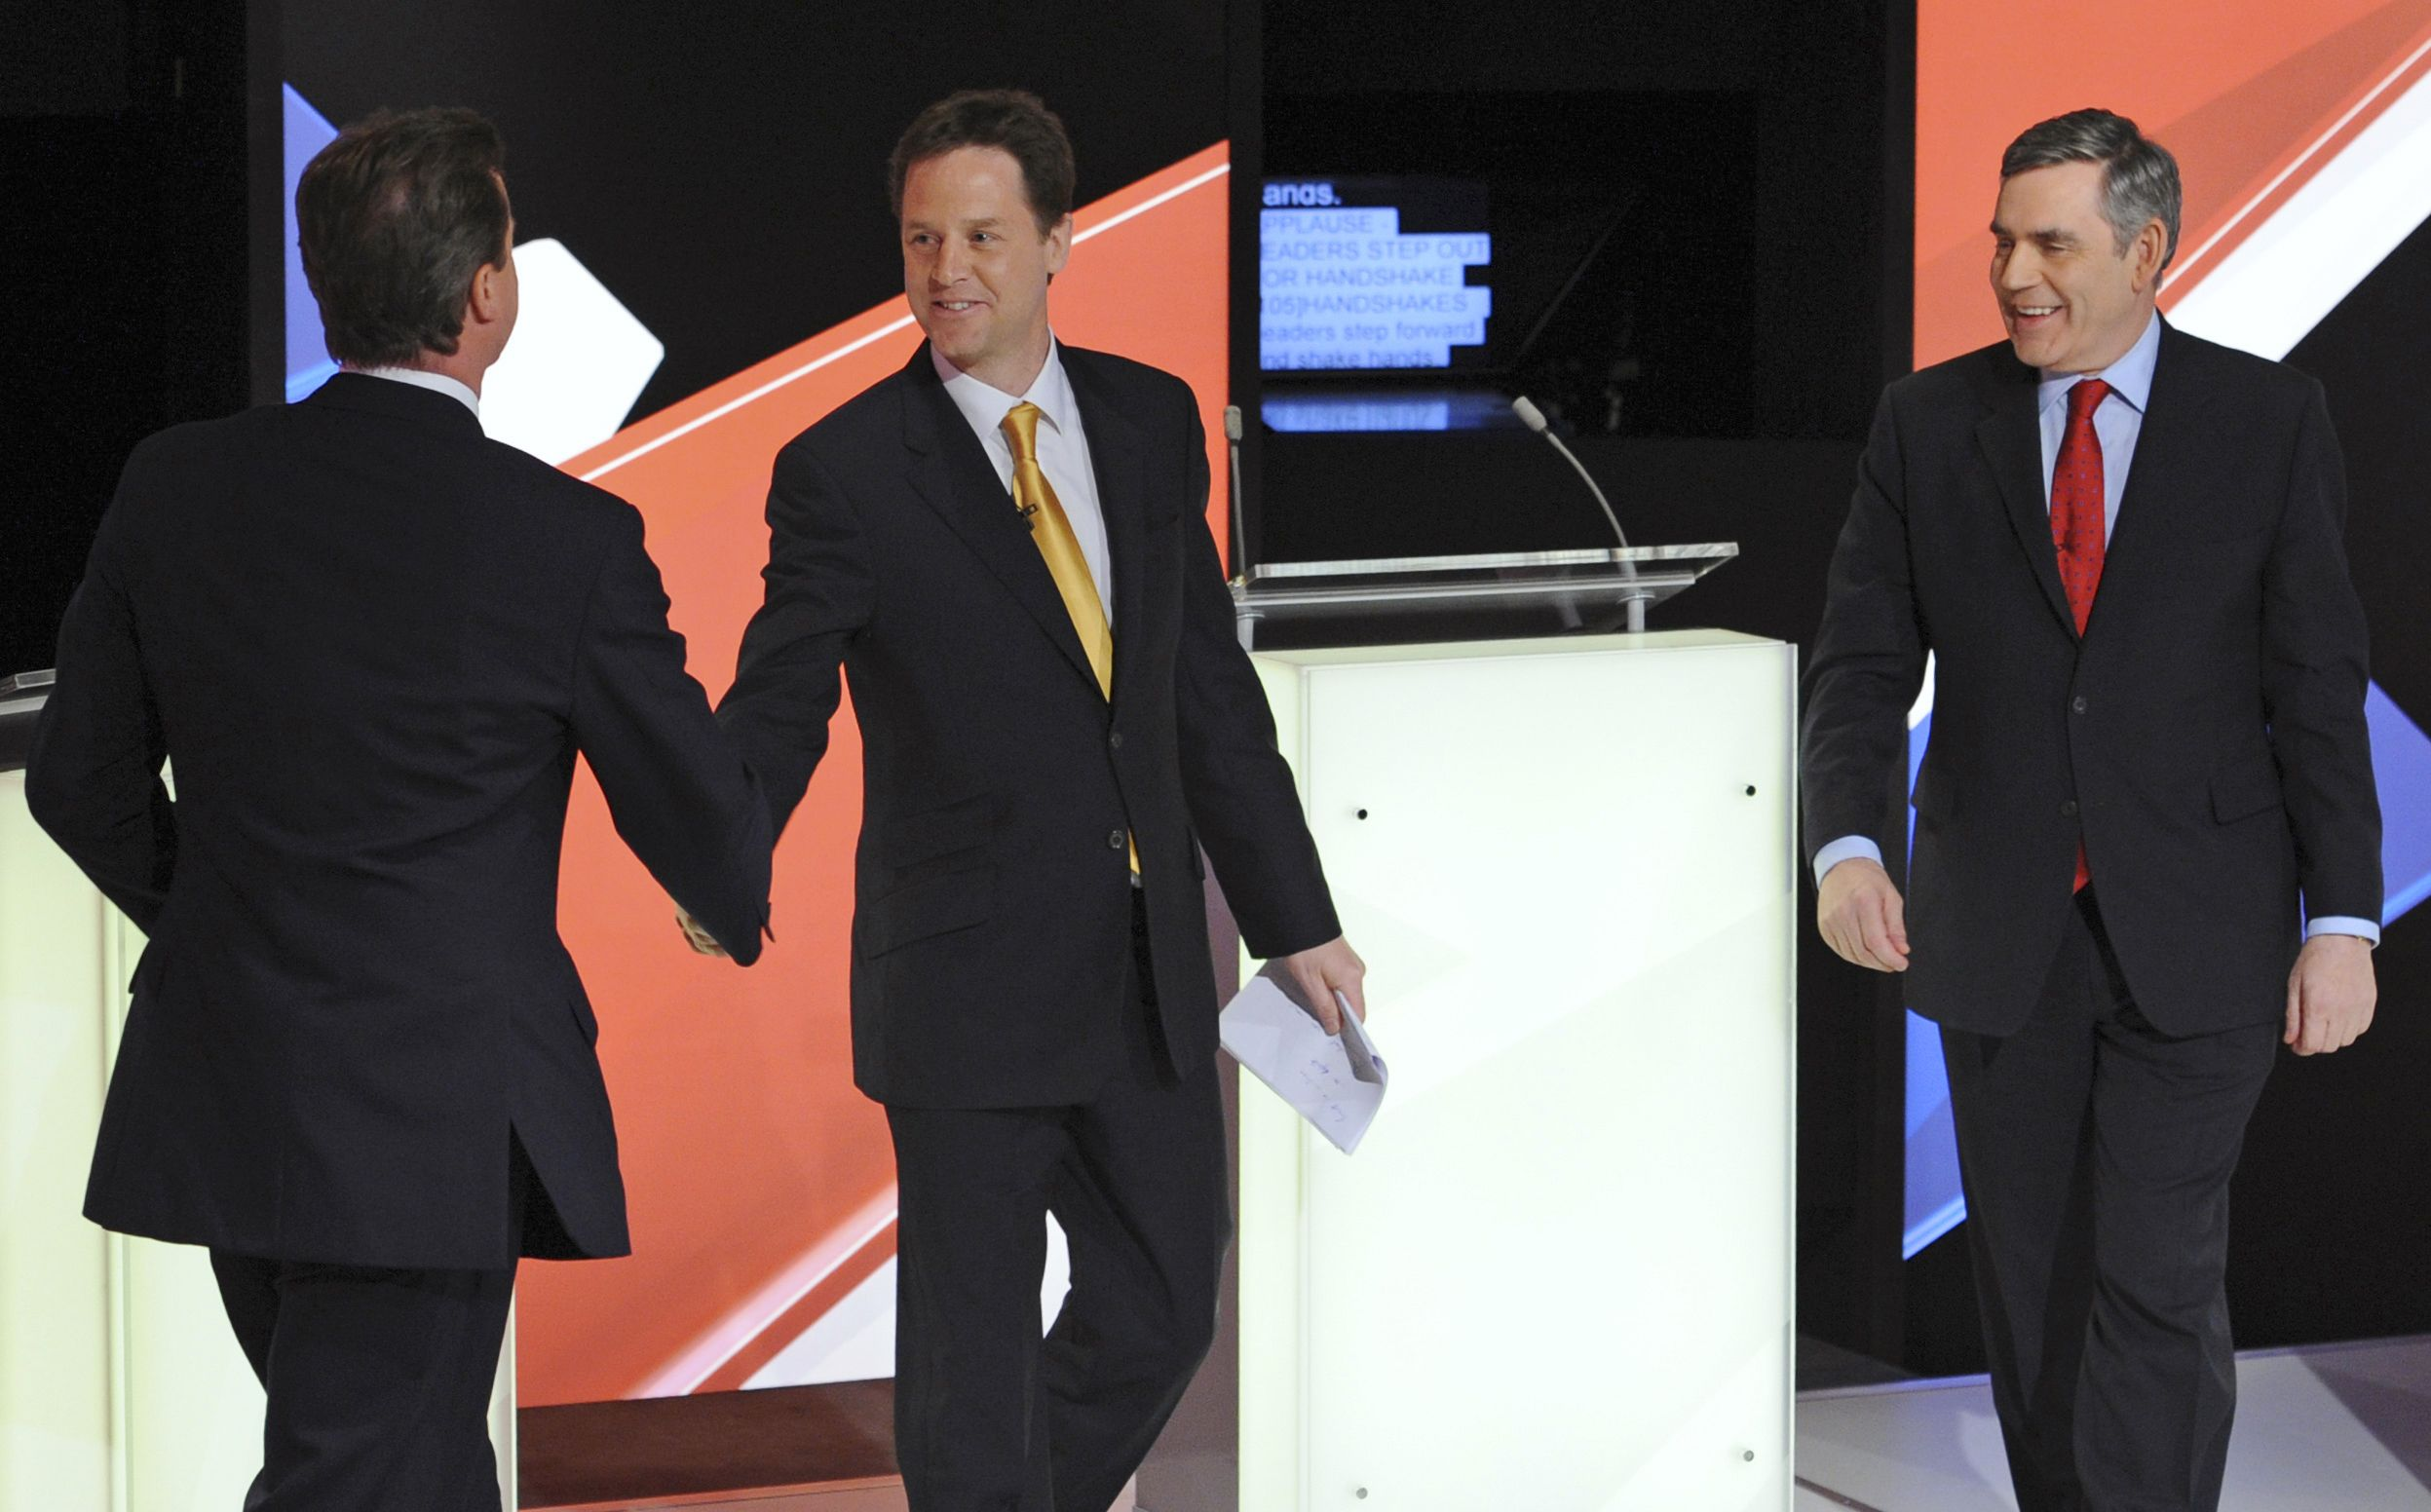 Nick Clegg Interview: 'We Ended Up Strapped to a Political